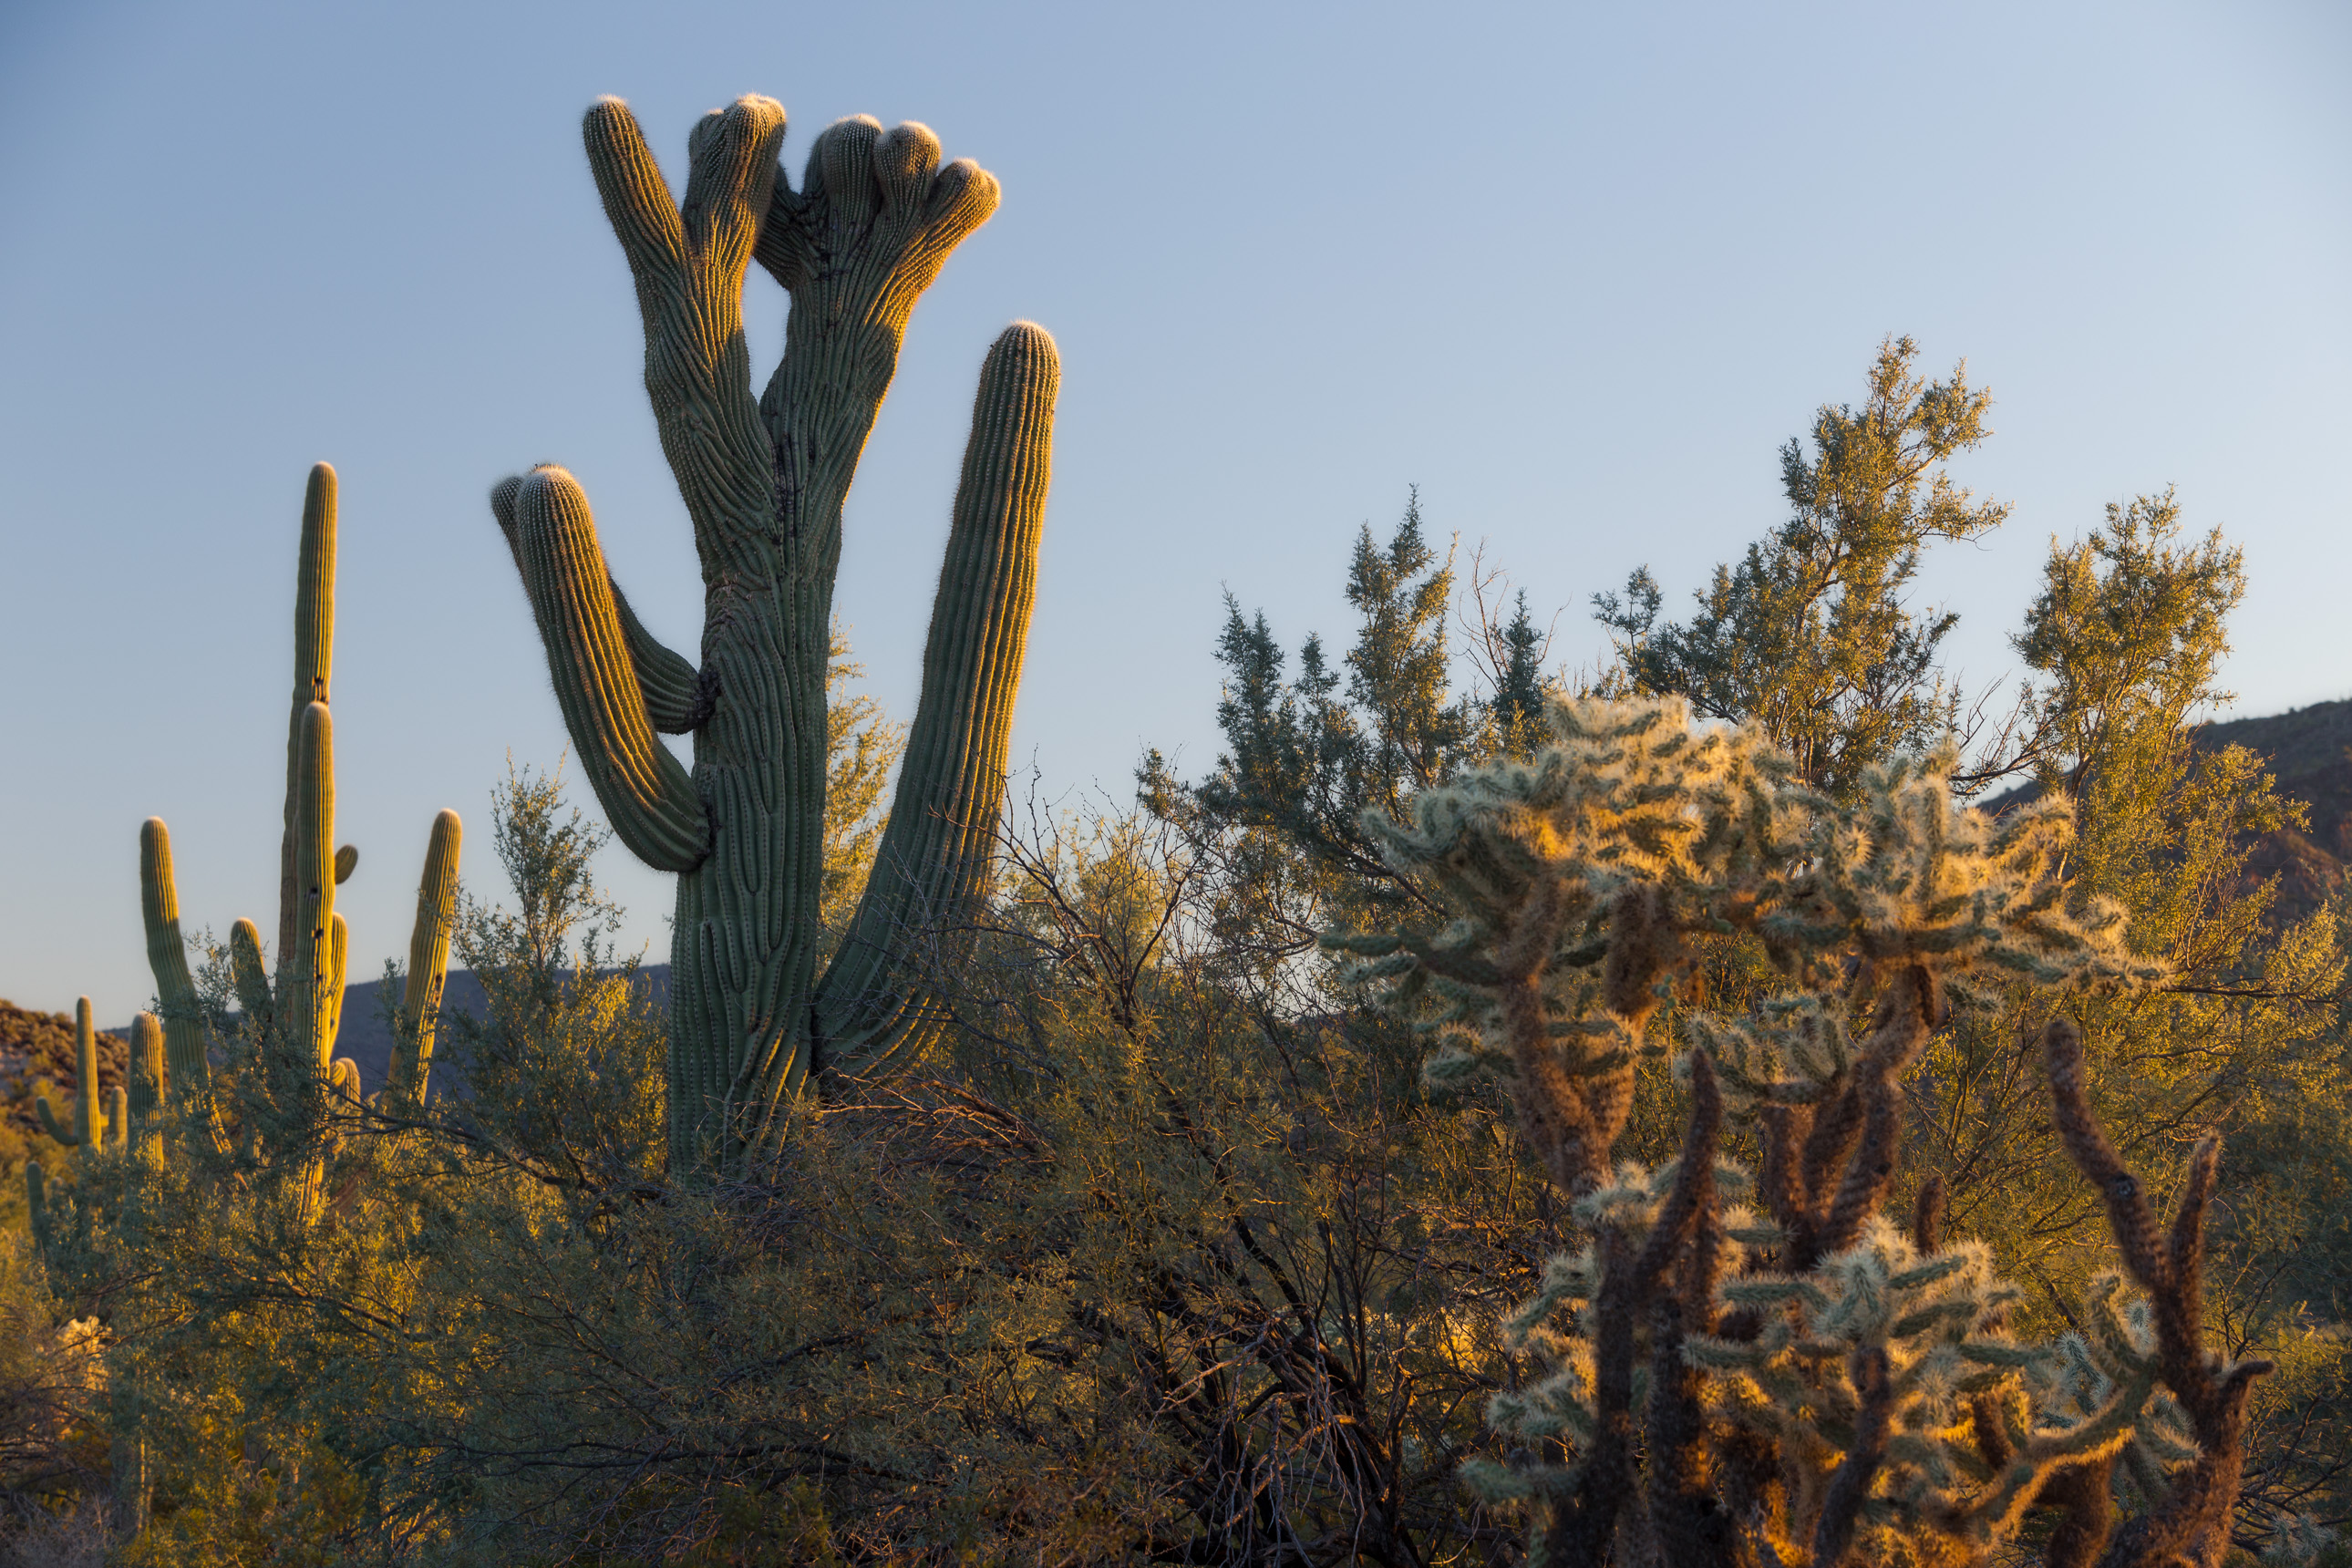 Crested Saguaro on Bates Well Road